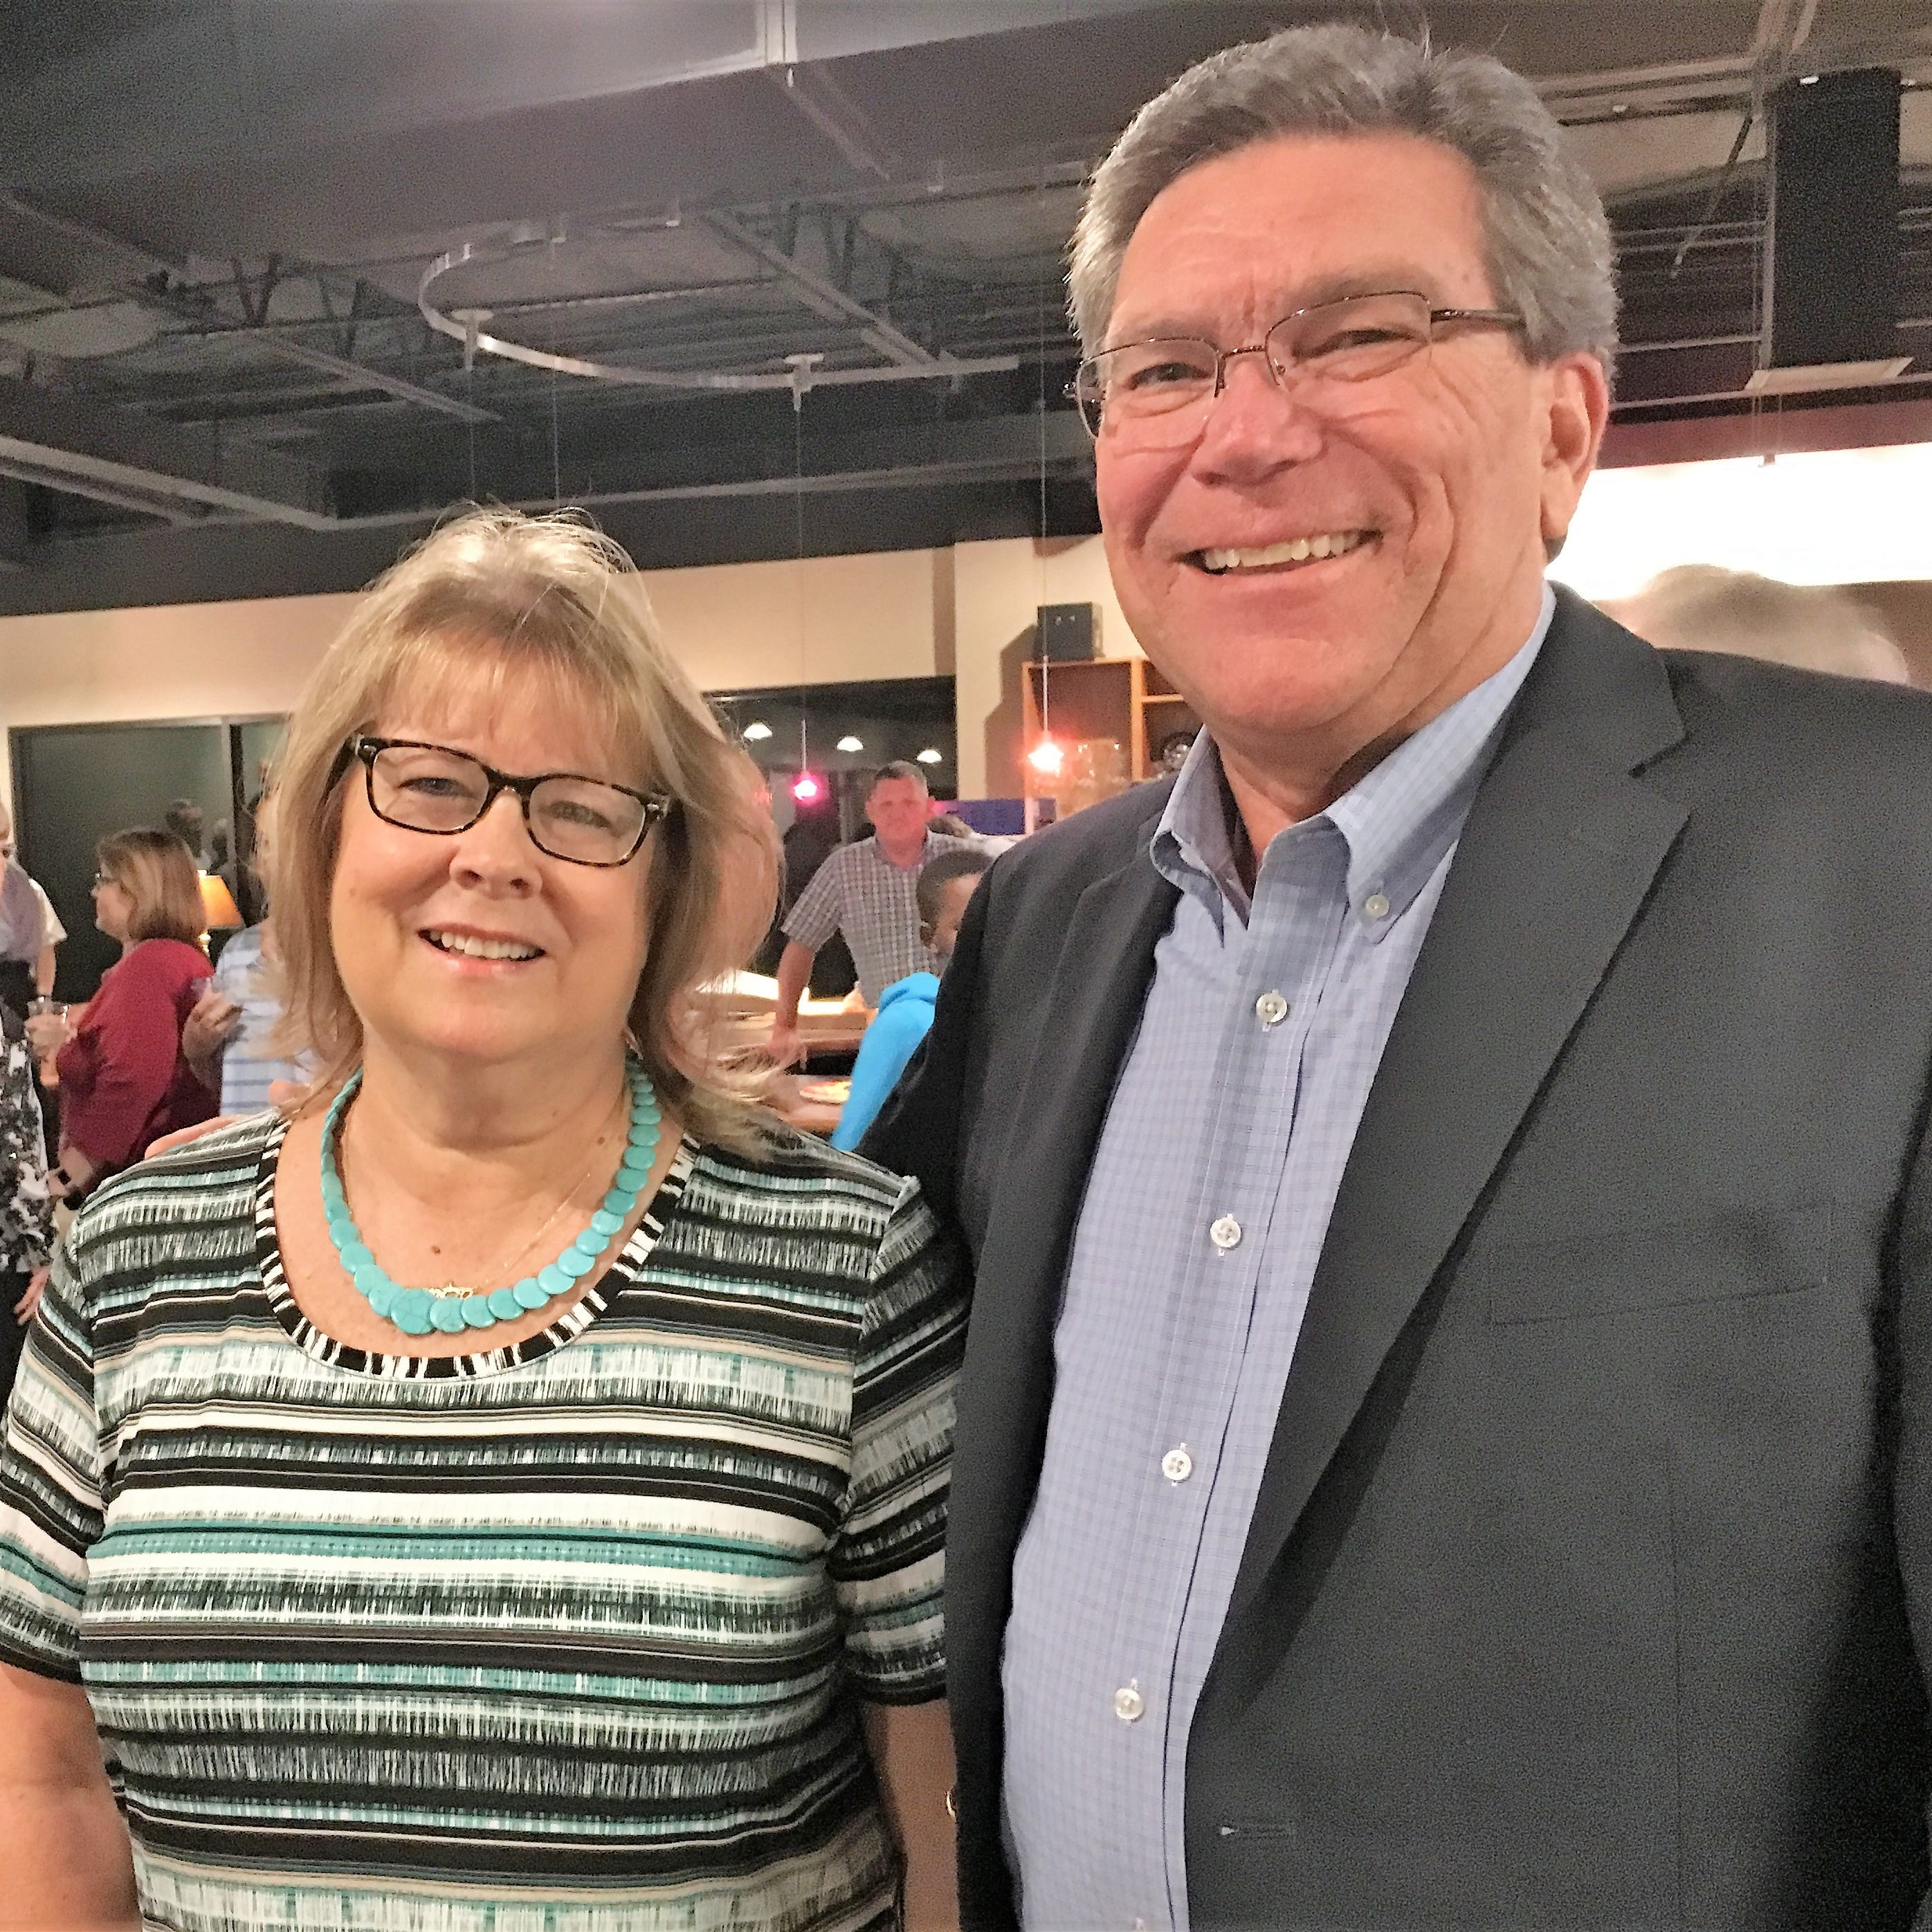 Pioneer Drive Baptist honors Allcorns for 20 years of service to Abilene